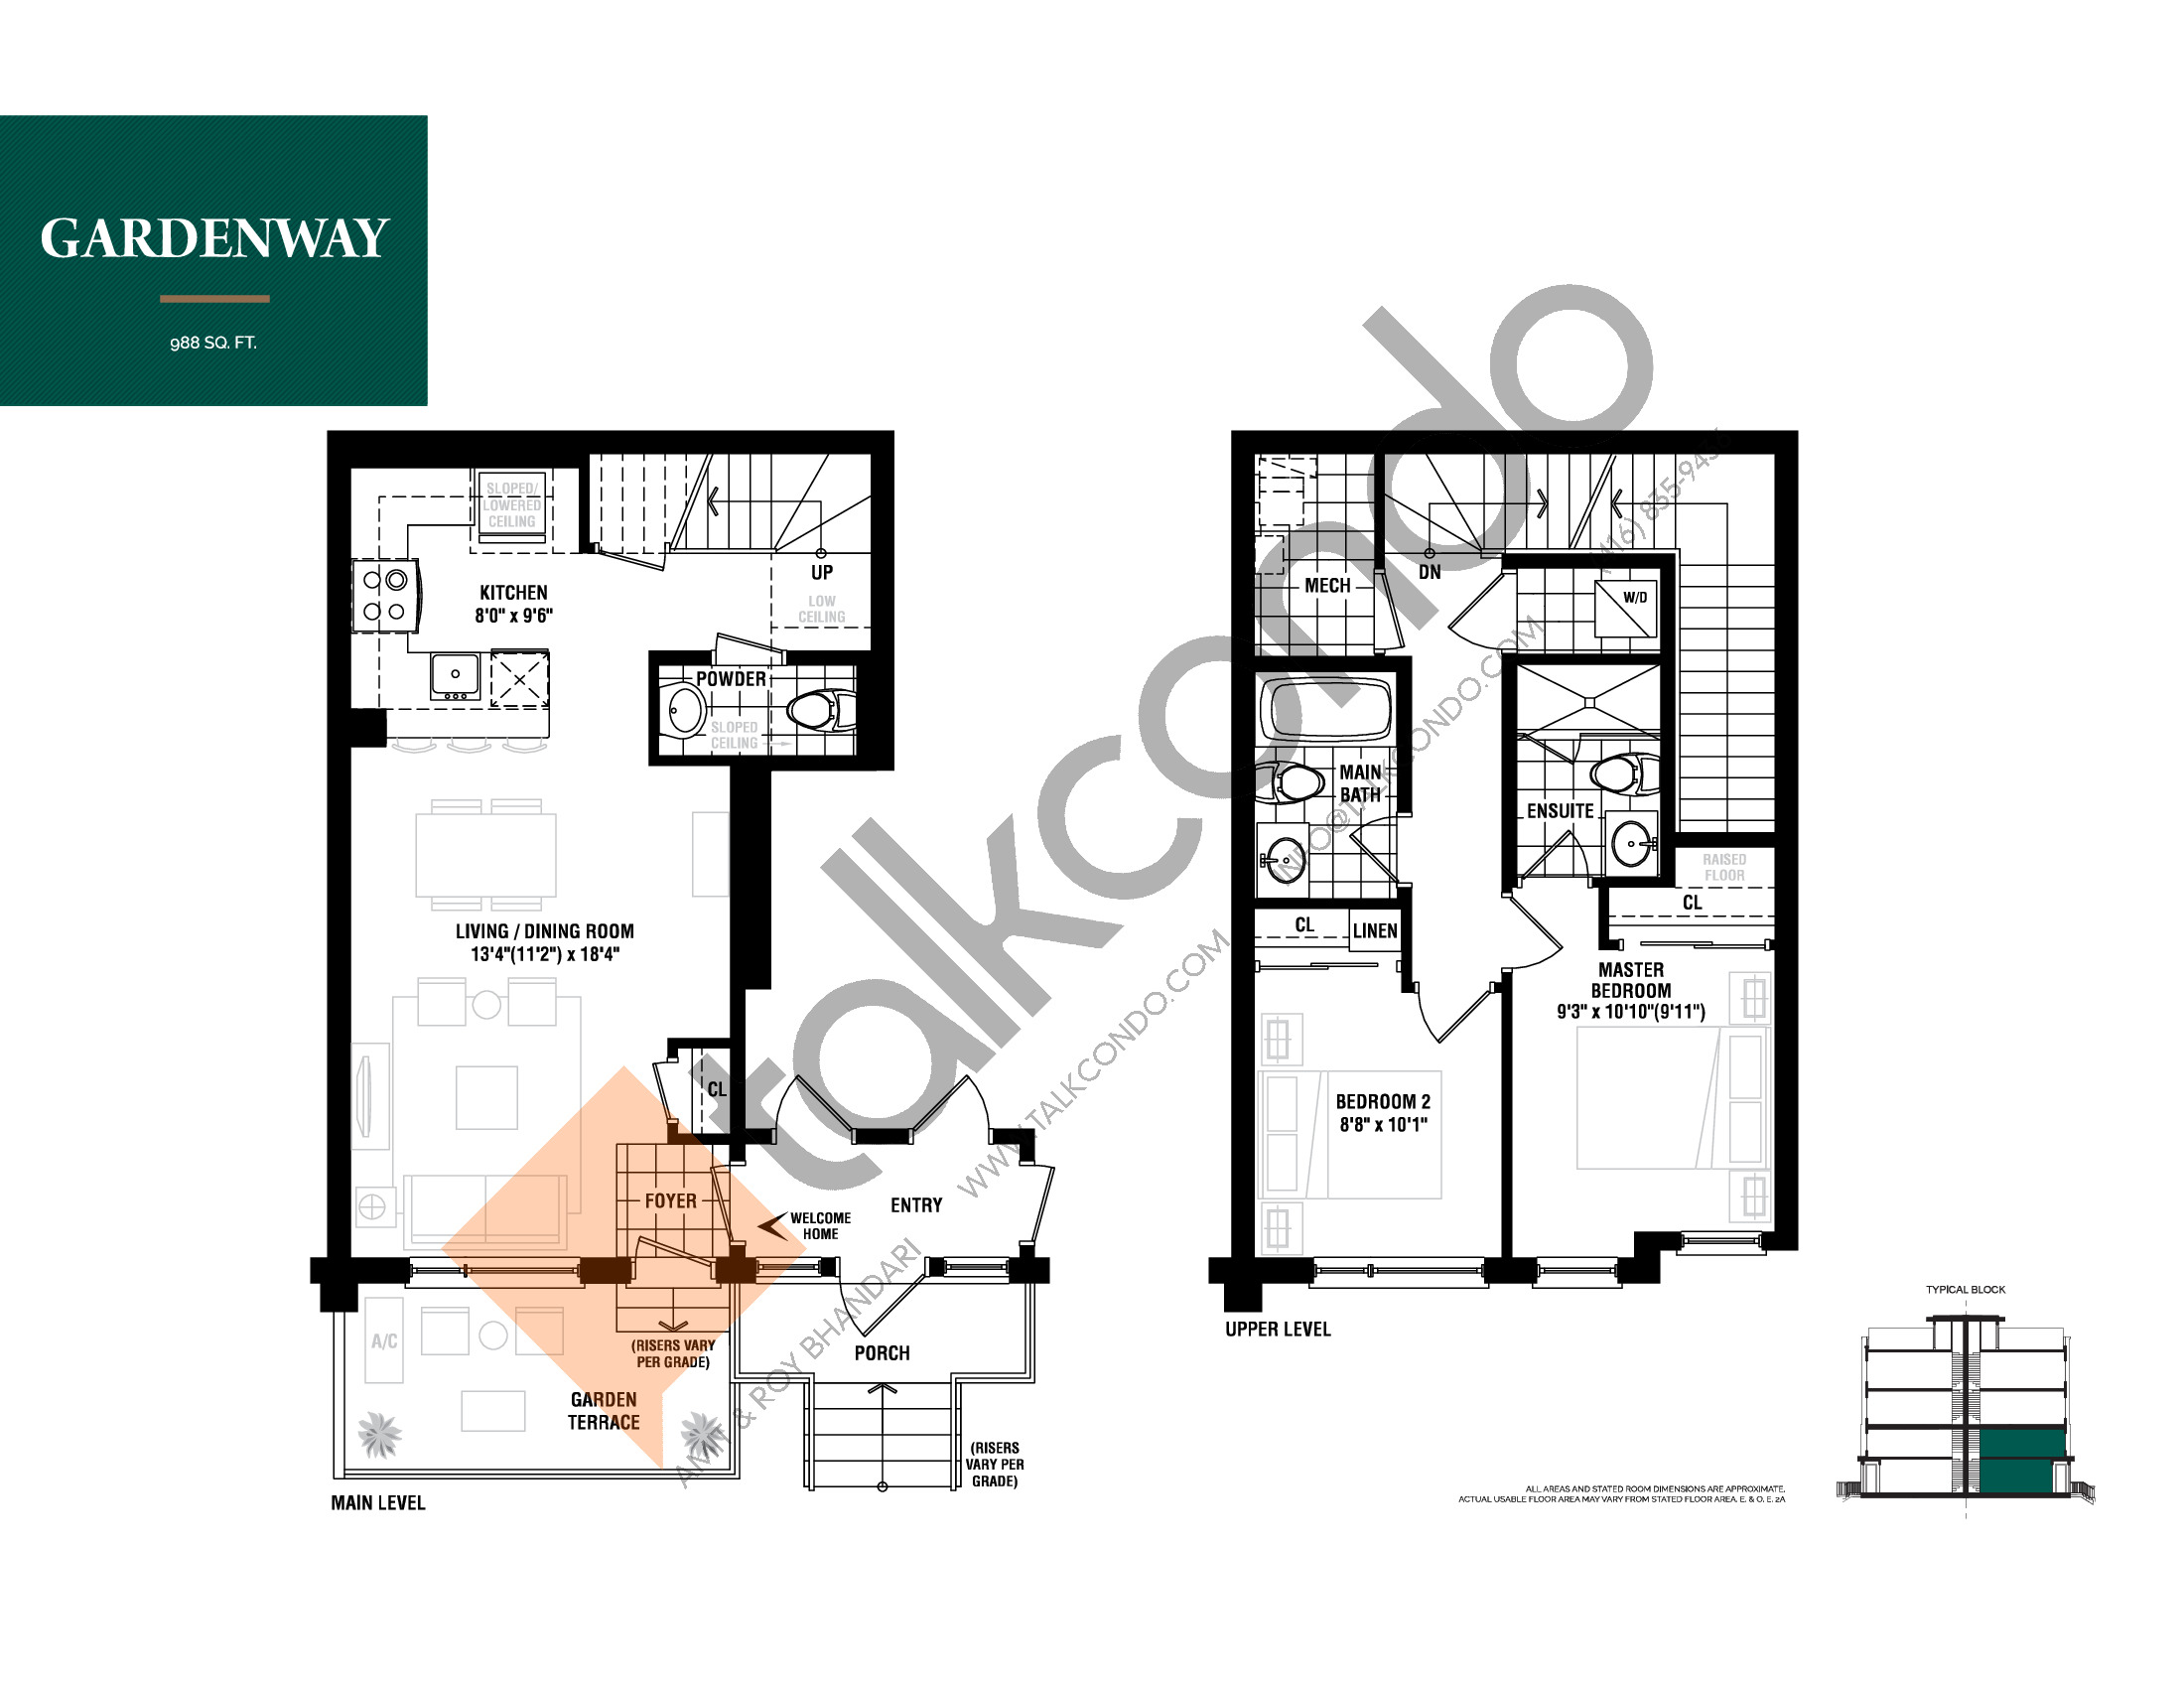 Gardenway Floor Plan at The Way Urban Towns - 988 sq.ft